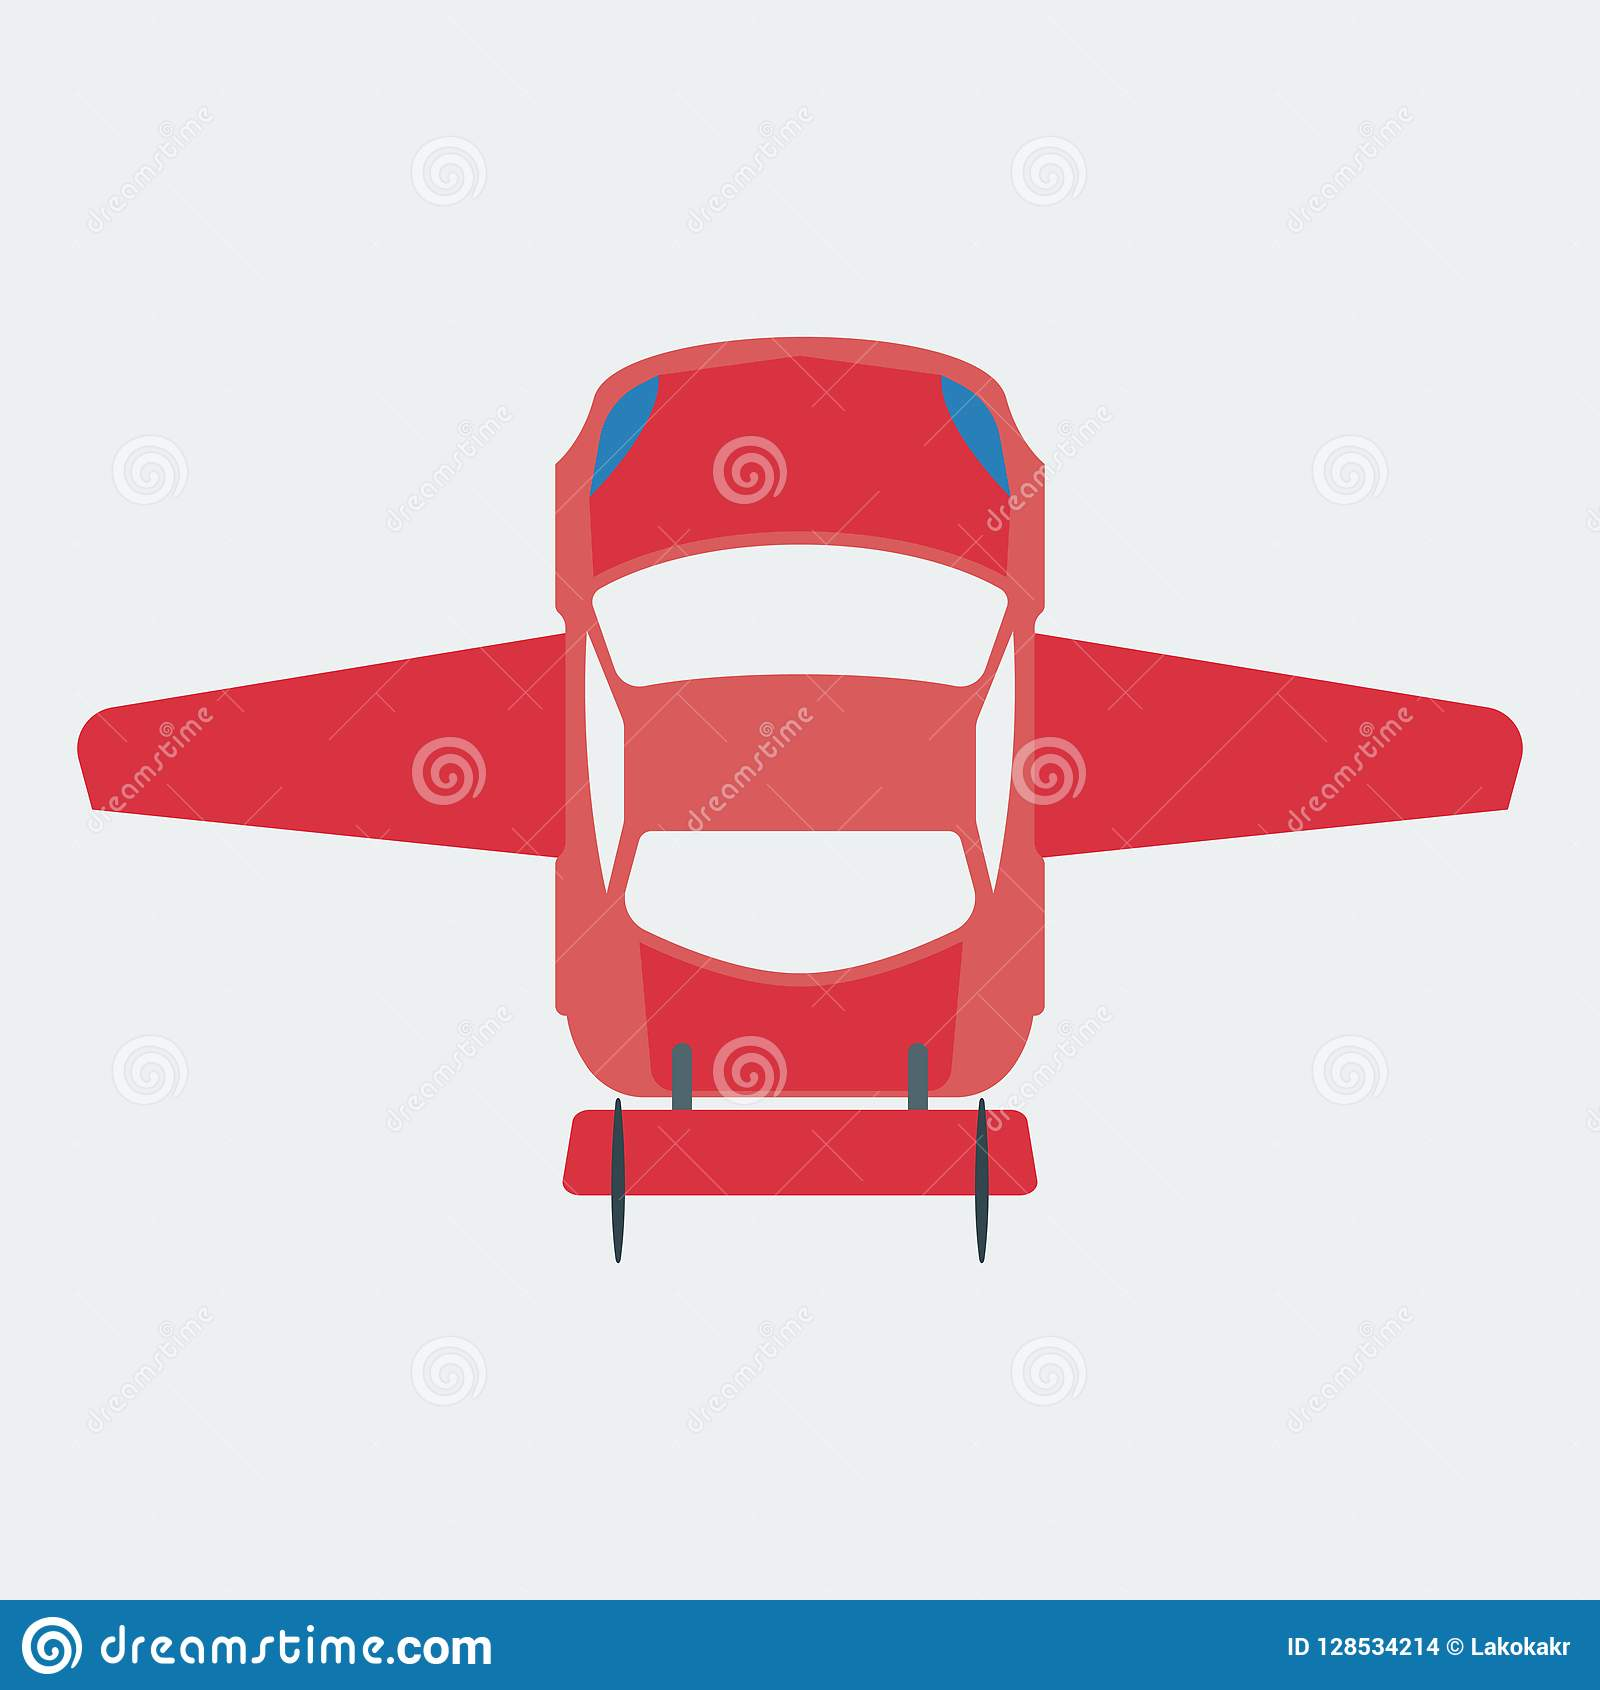 Car Icon Moving Through The Air  Flying Car  Stock